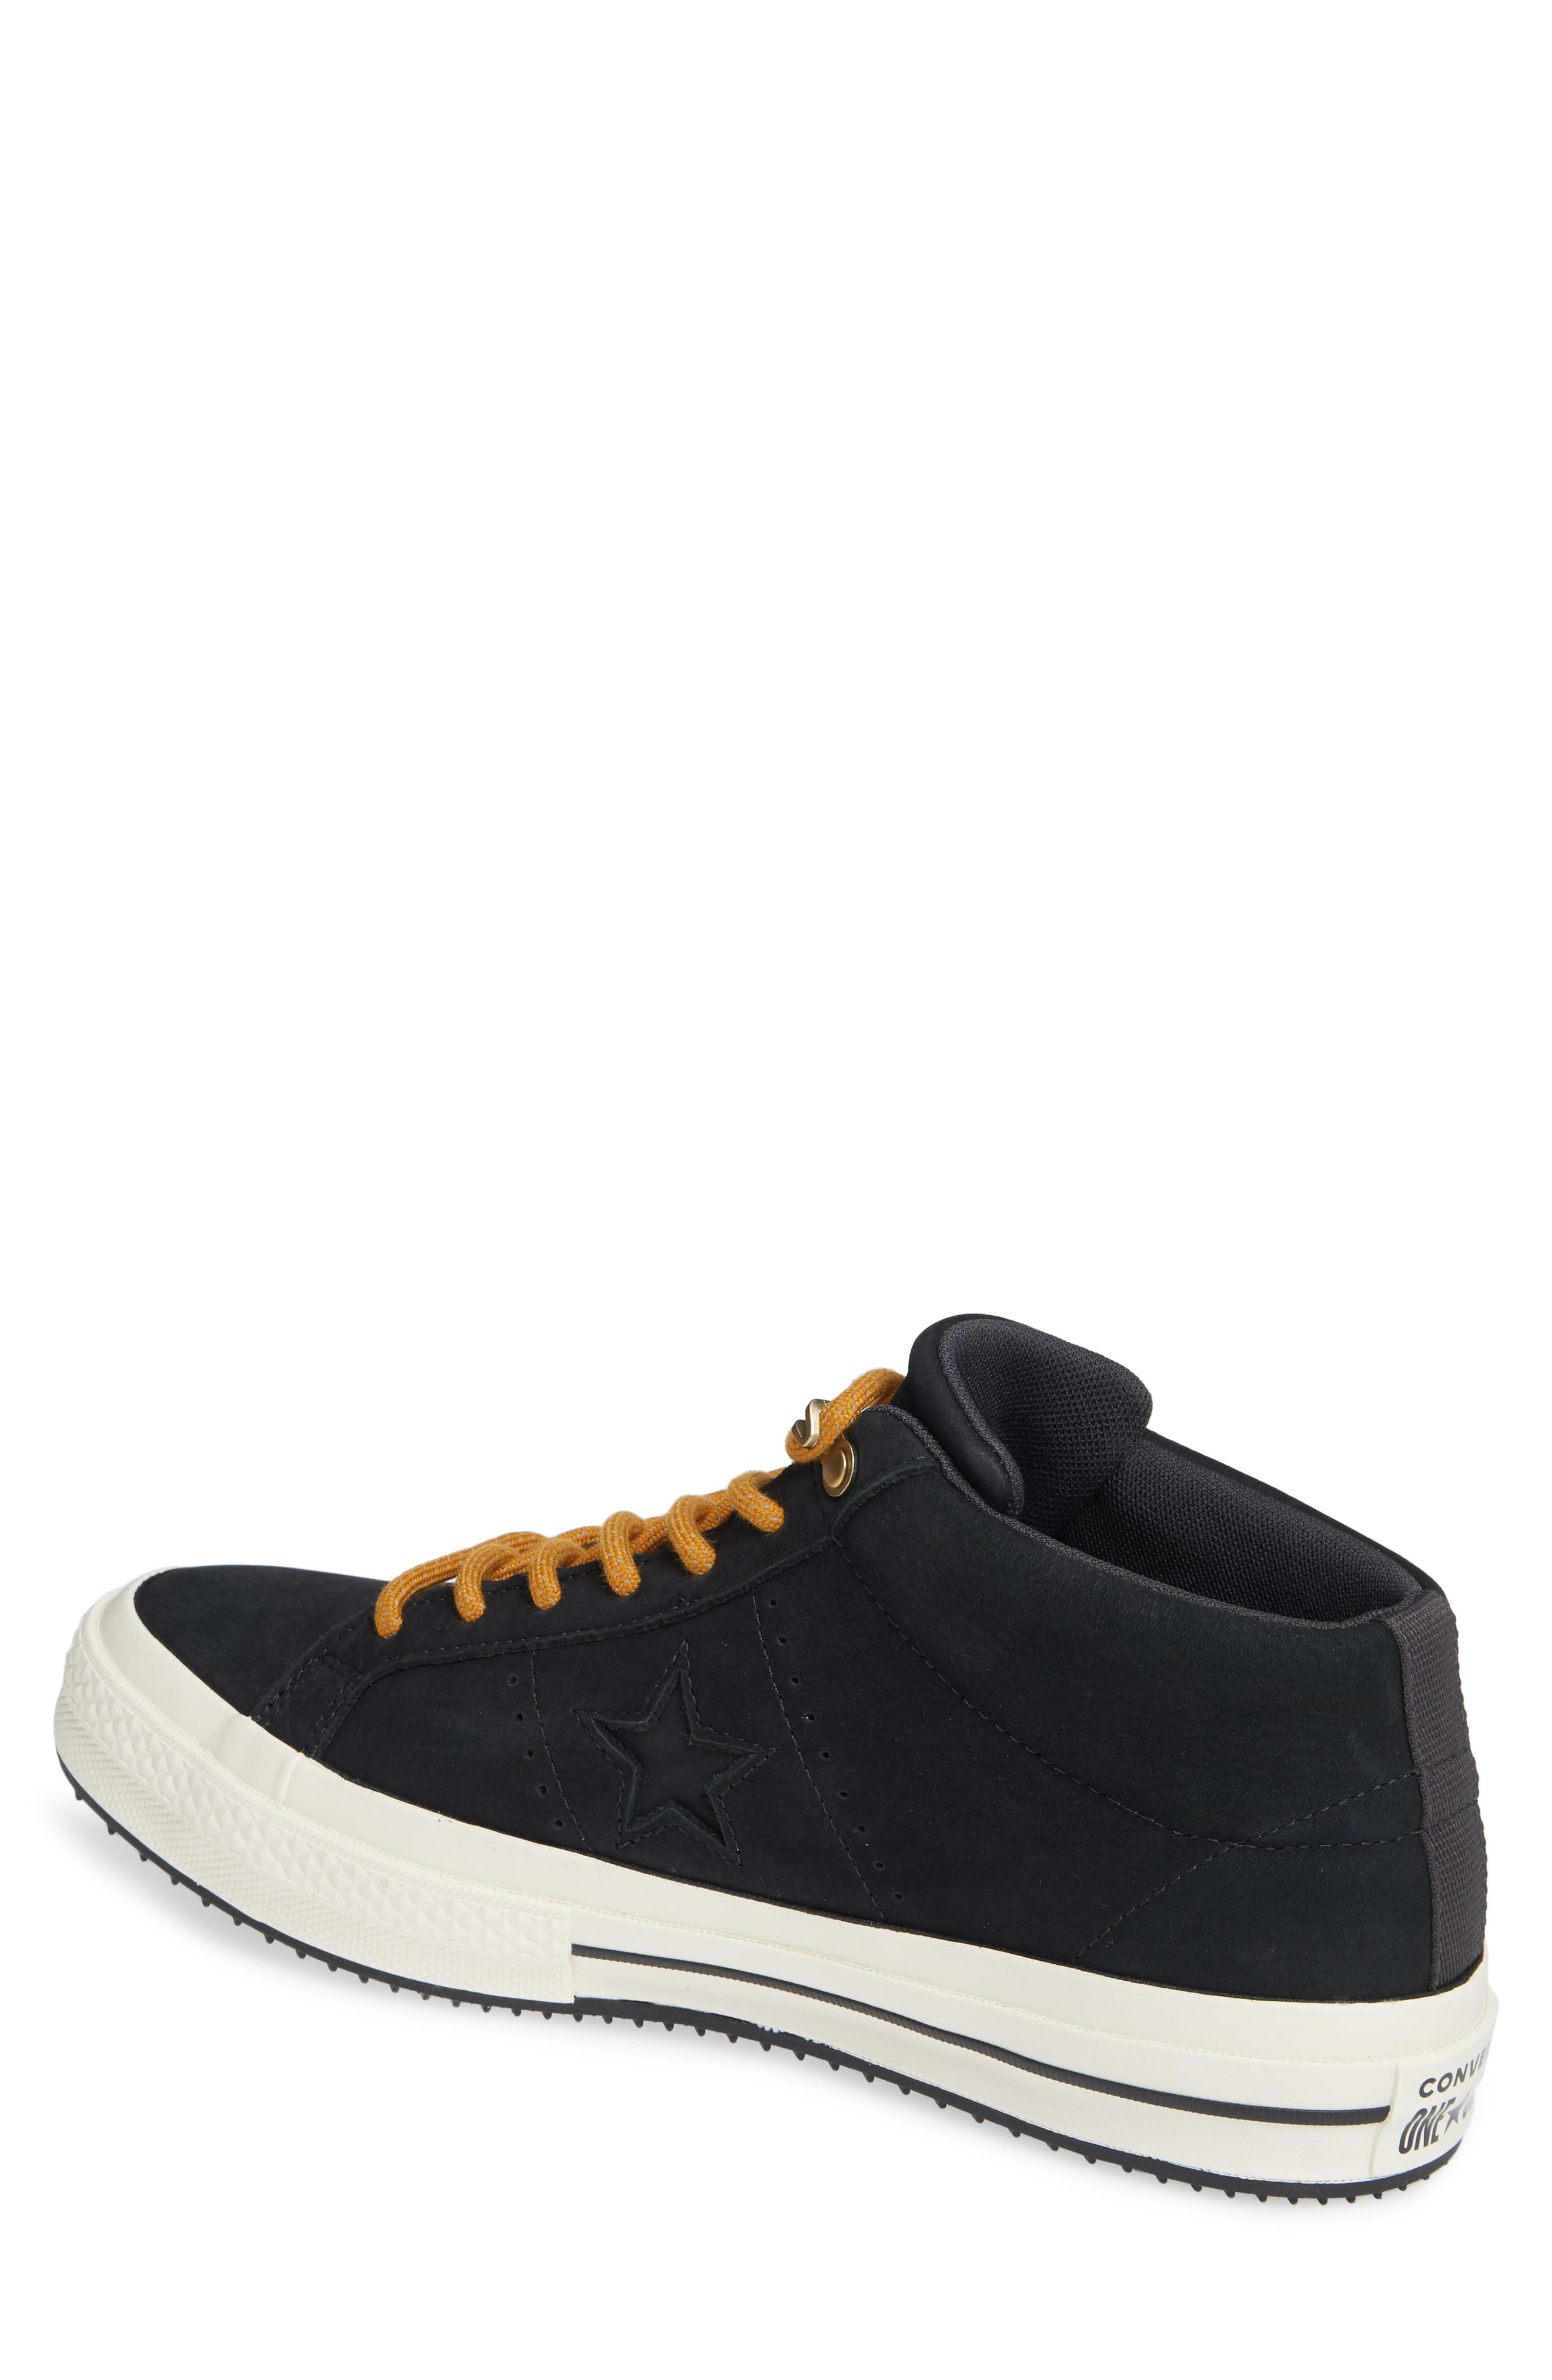 One Star Mid Counter Climate Scout Sneaker,                             Alternate thumbnail 2, color,                             BLACK/ BLUE HERO/ TEAK SUEDE